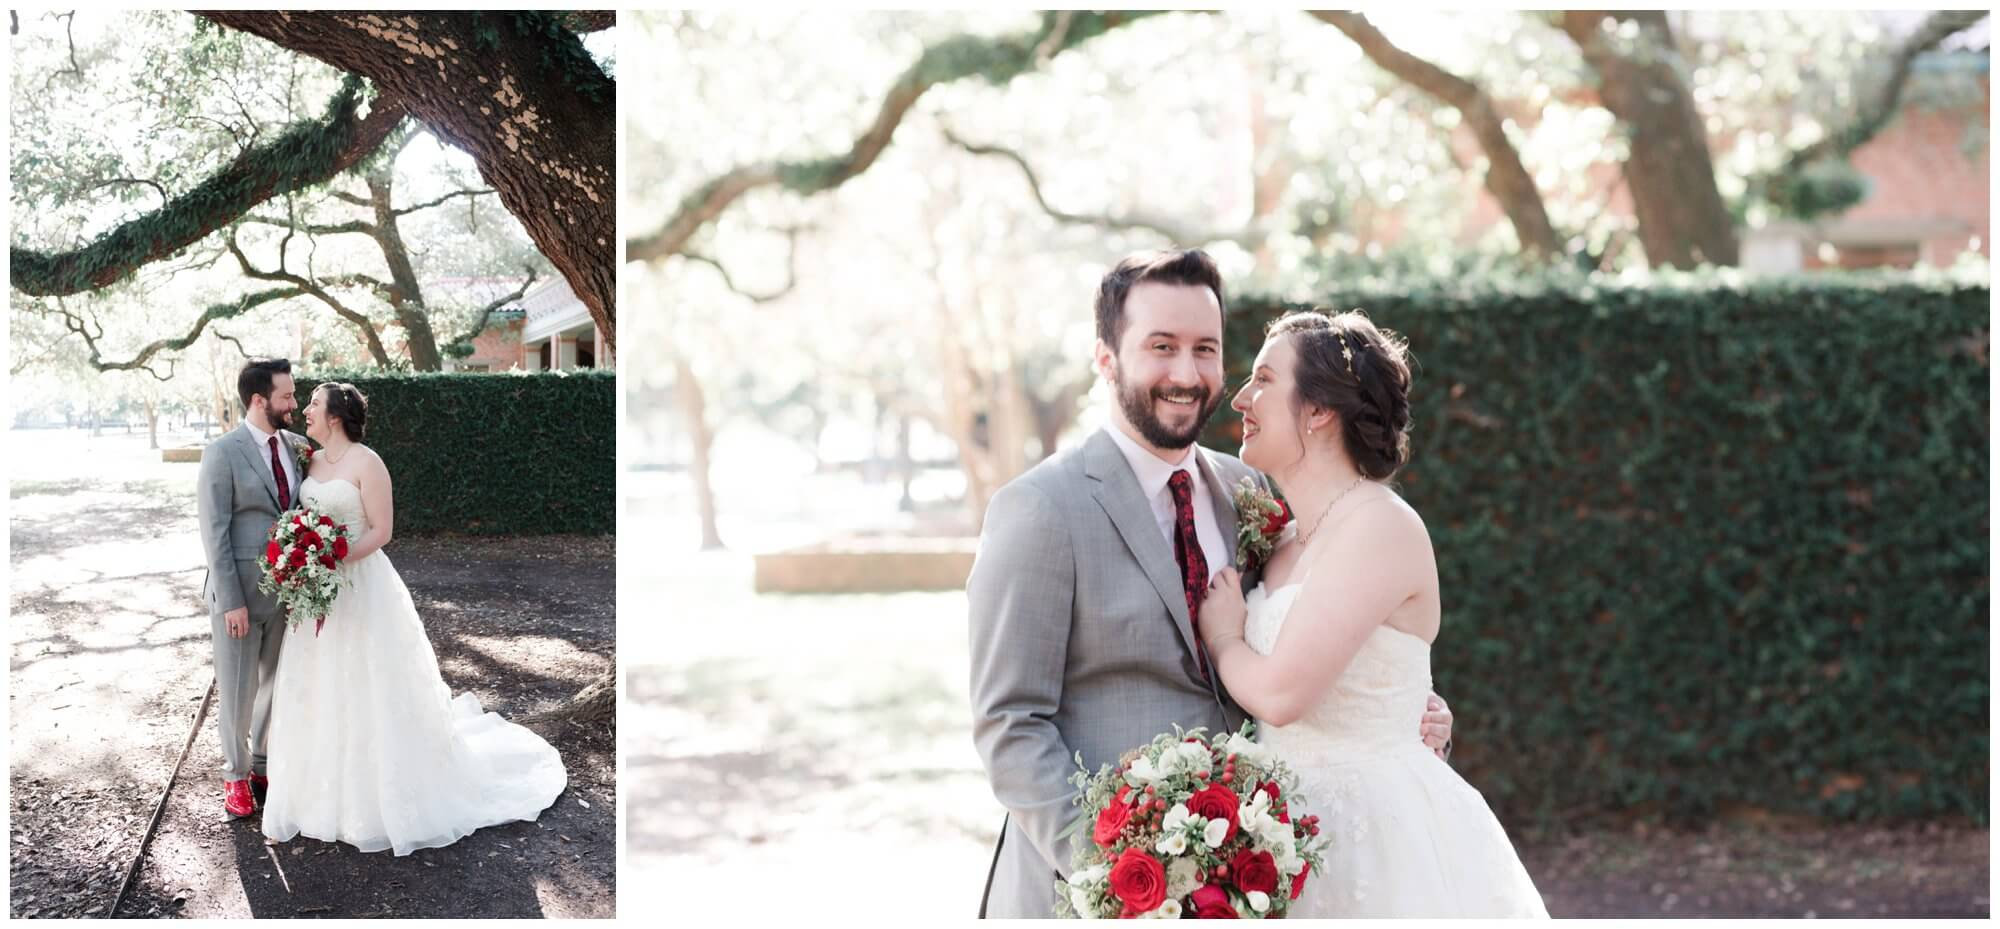 bride and groom portraits at Rice University in Houston Texas by Swish and Click Photography